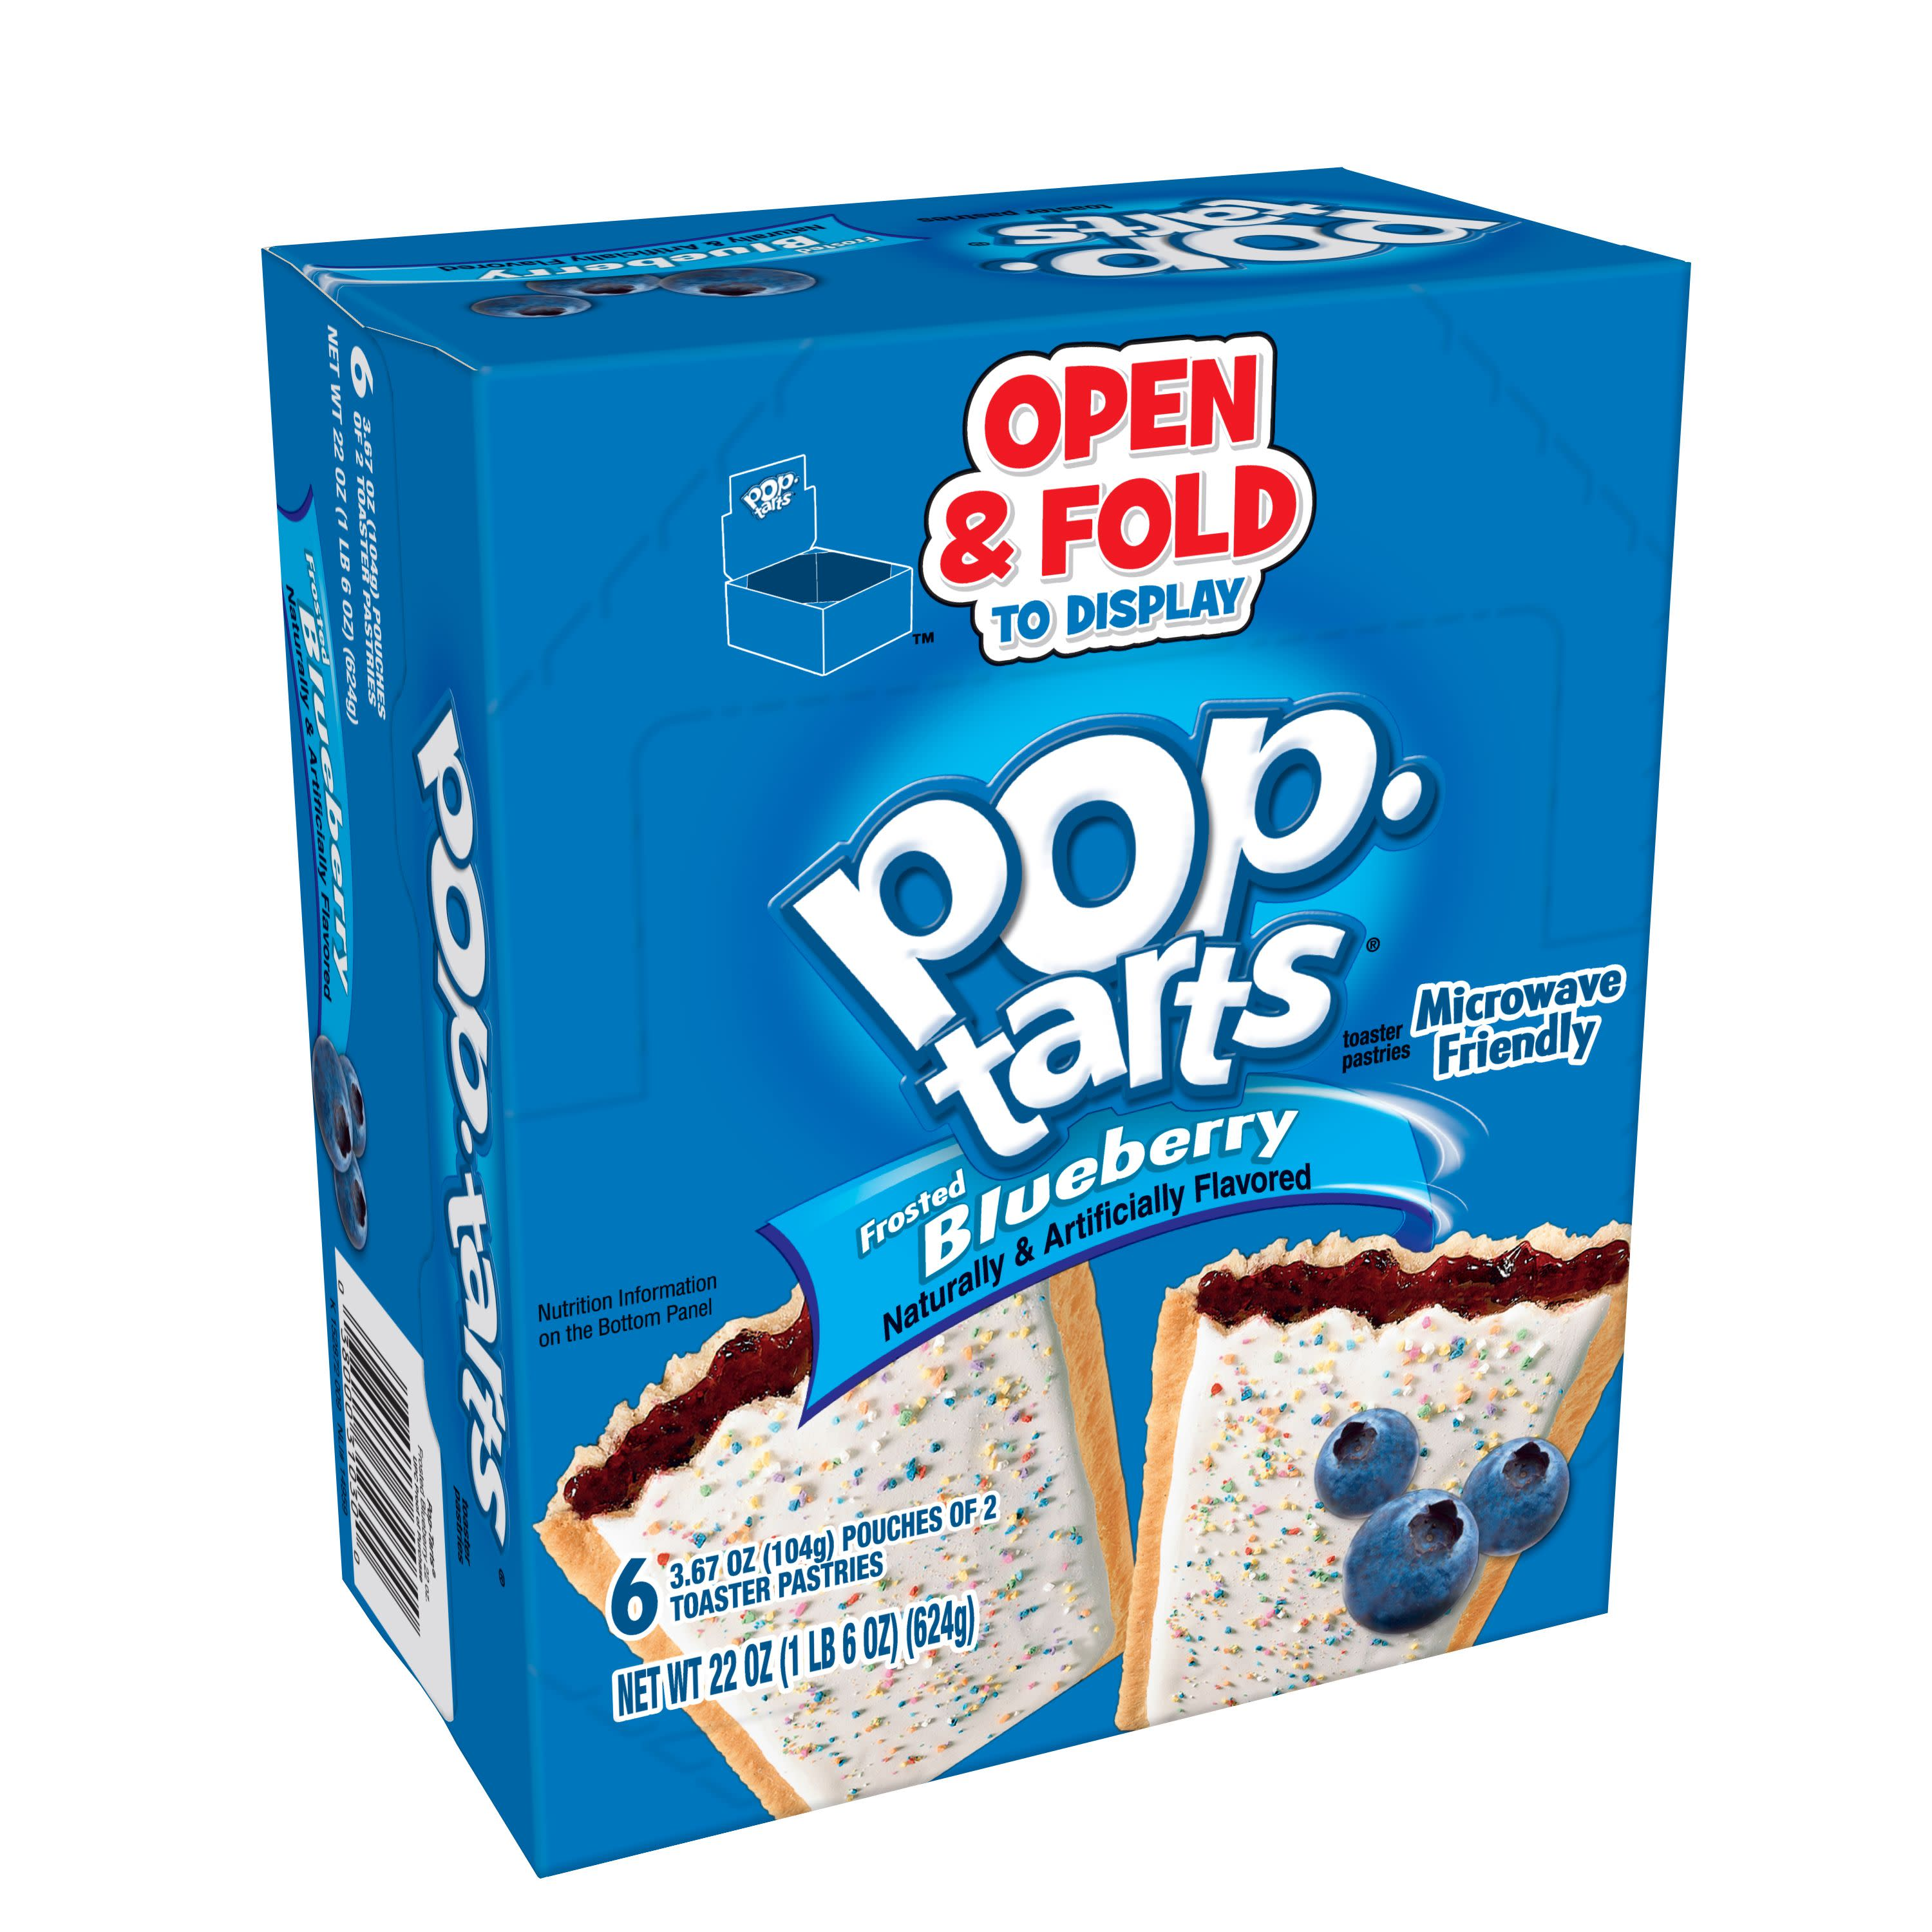 Kellogg's Pop-Tarts BreakfastToaster Pastries, Frosted Blueberry Flavored, 22 oz 12 Ct